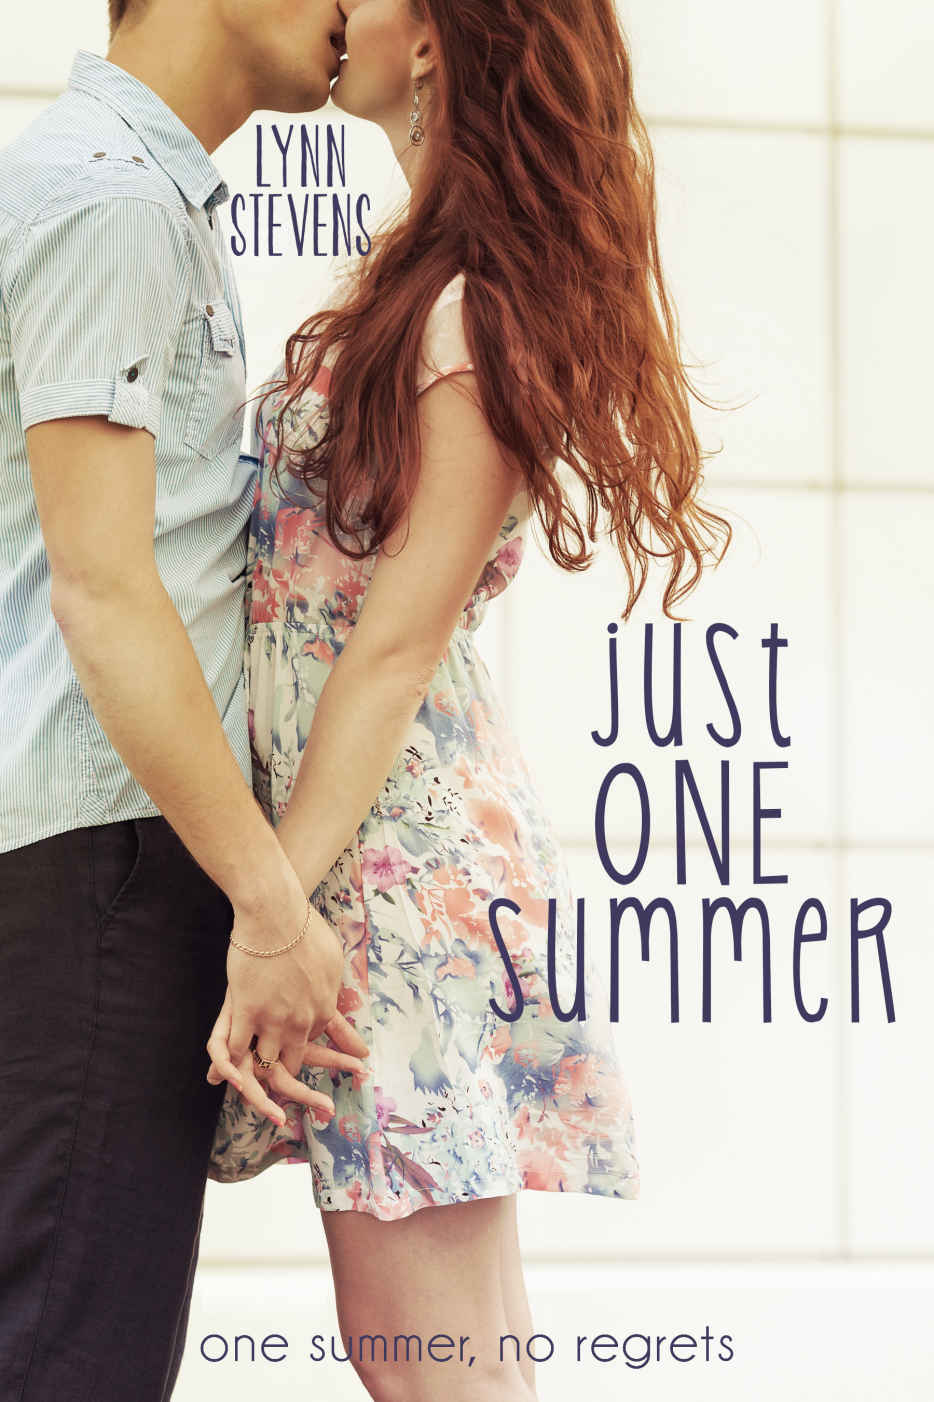 JUST ONE SUMMER 1st Edition Pdf Free Download